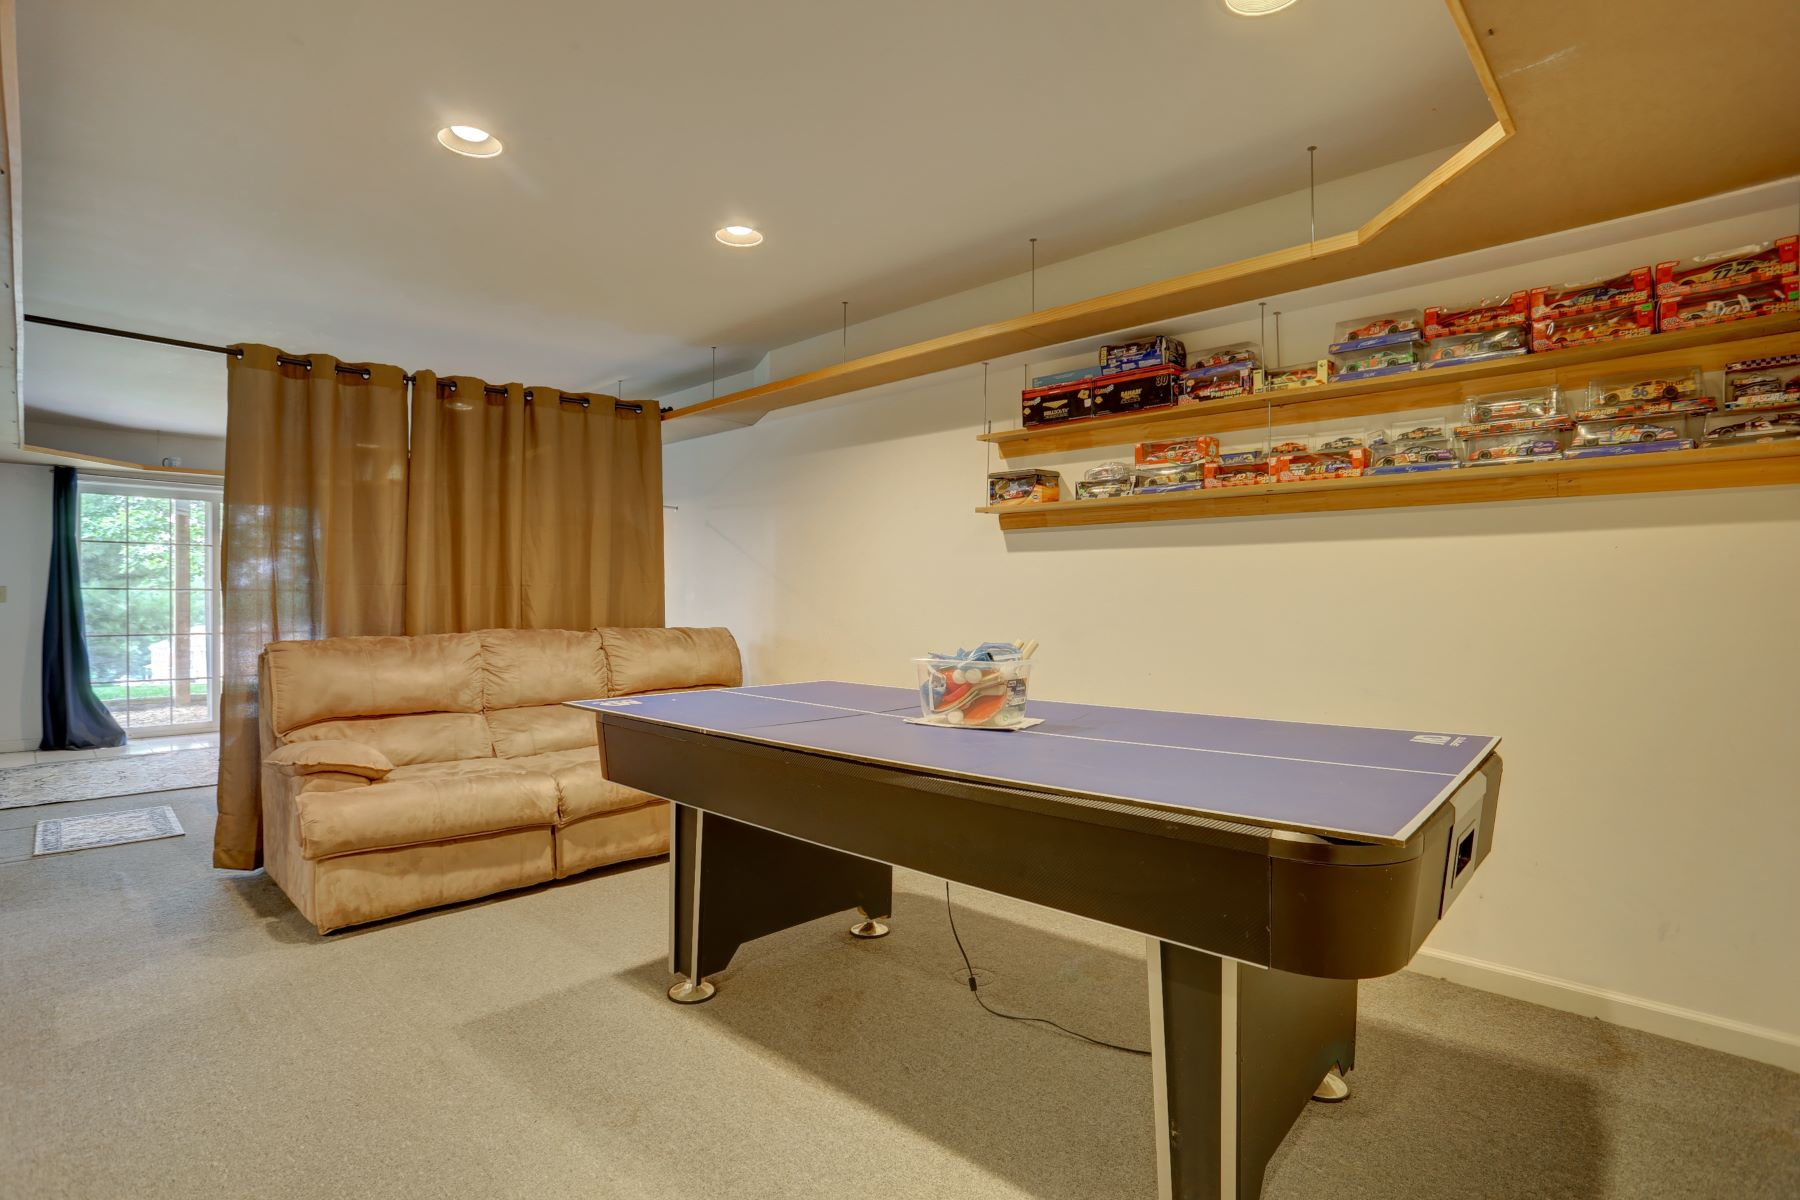 Additional photo for property listing at 50 Oriole Drive 50 Oriole Drive 史蒂文斯, 宾夕法尼亚州 17578 美国